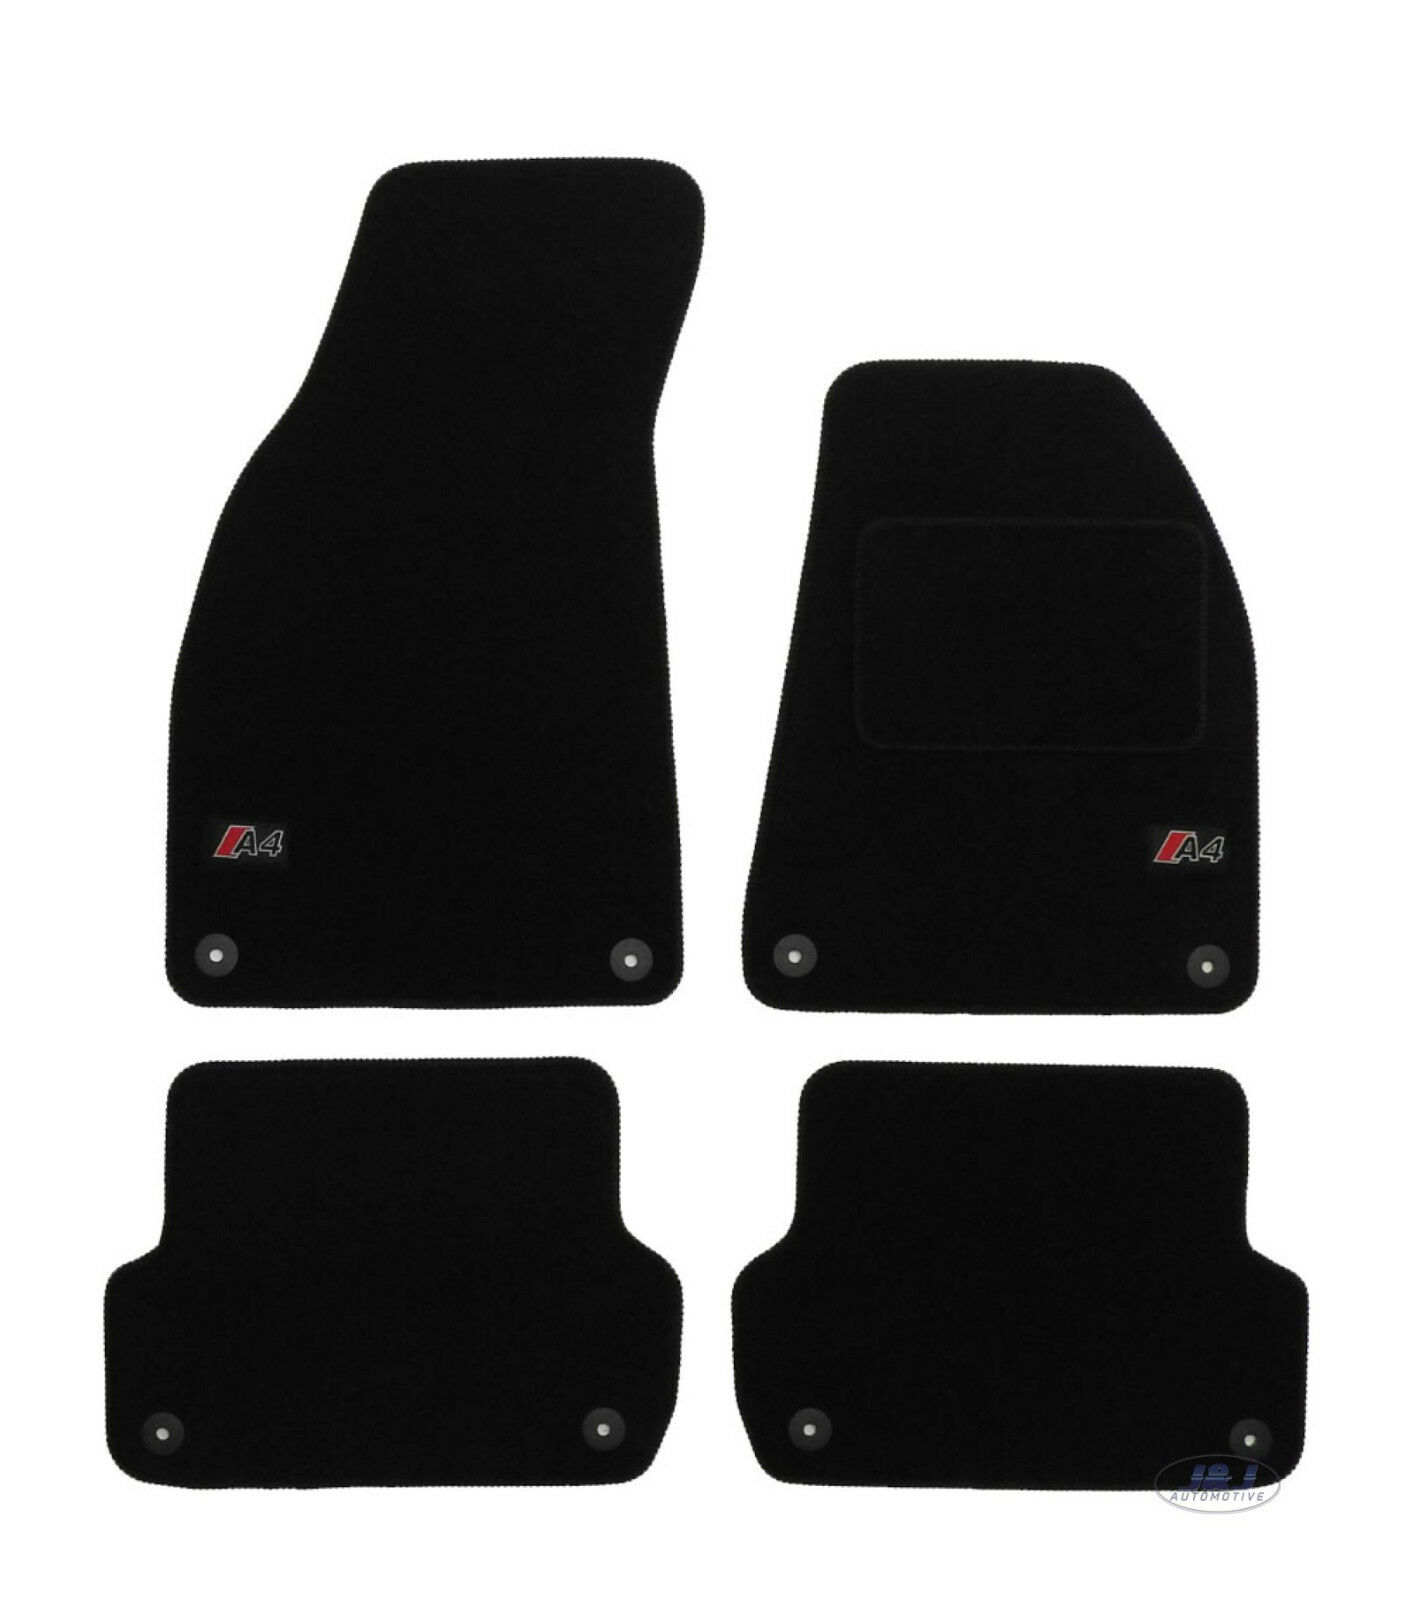 LUKAU002 TAILORED Black Floor Car Mats With Logo Audi A4